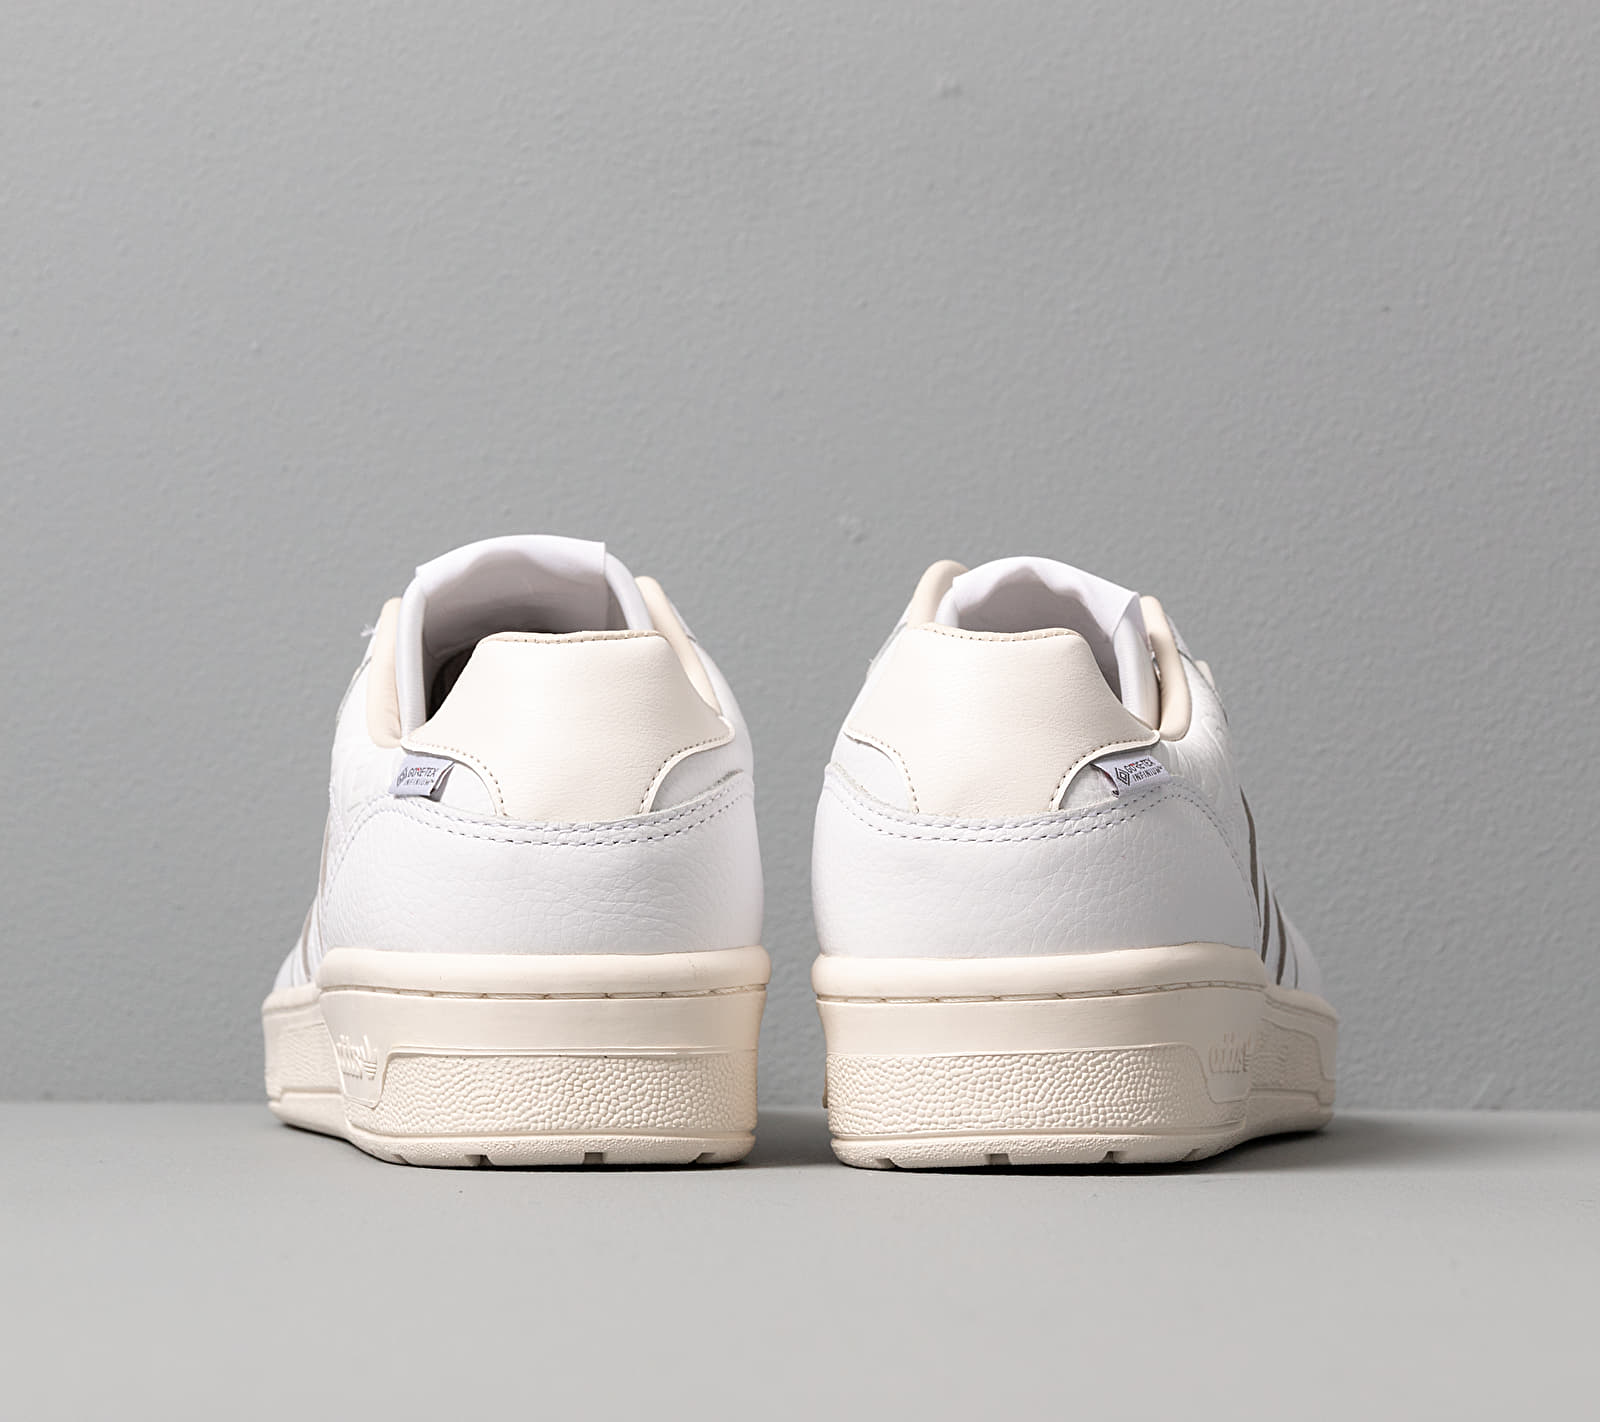 adidas Rivalry Low Gore-Tex Ftw White/ Off White/ Chalk White